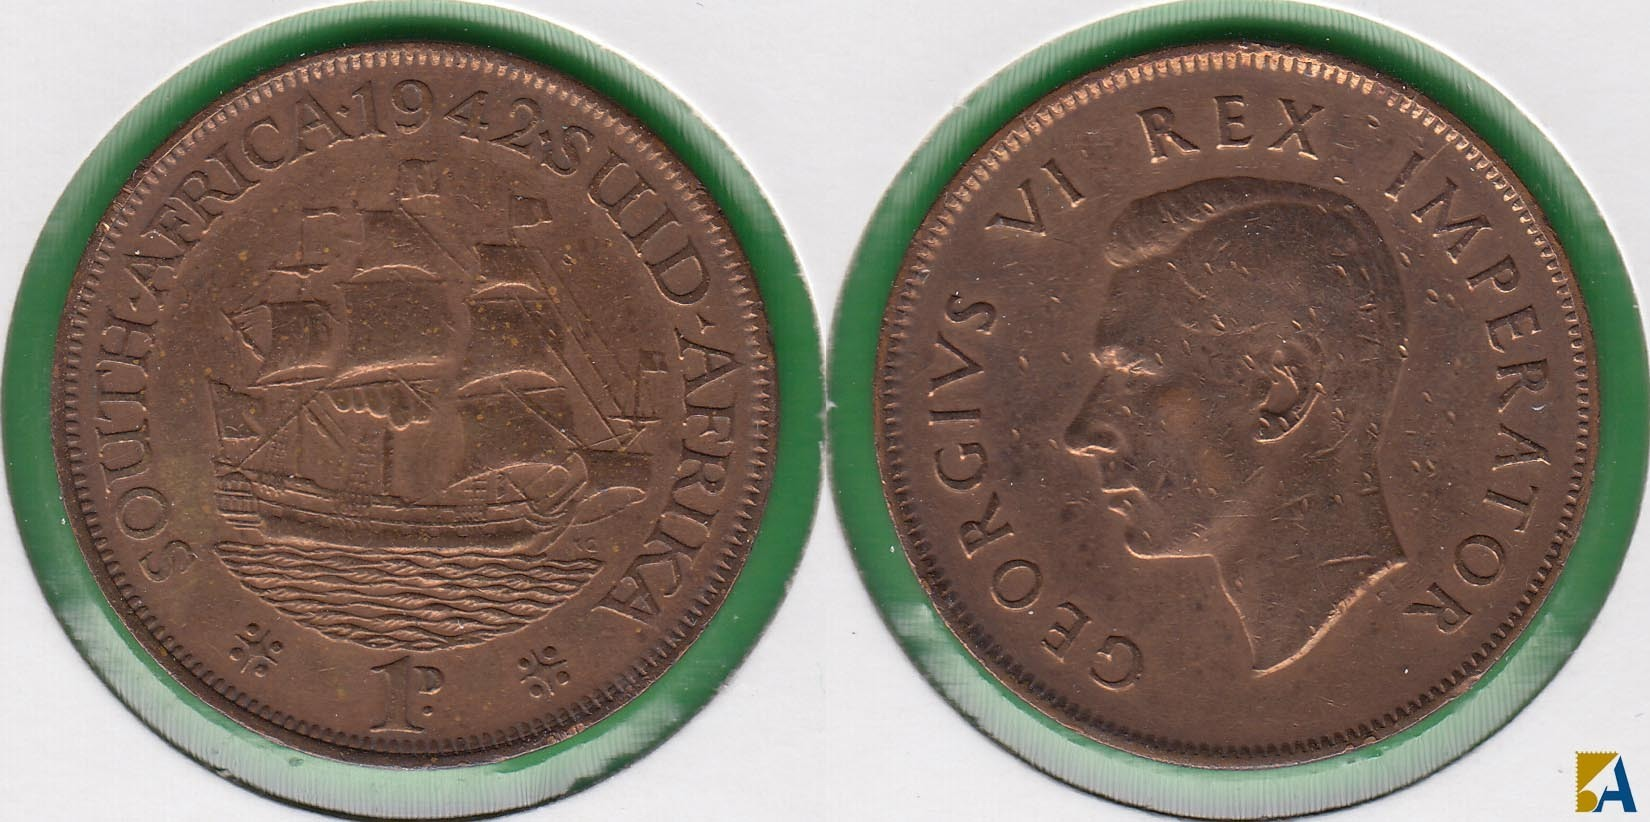 SUDAFRICA - SOUTH AFRICA. 1 PENIQUE (PENNY) DE 1942.